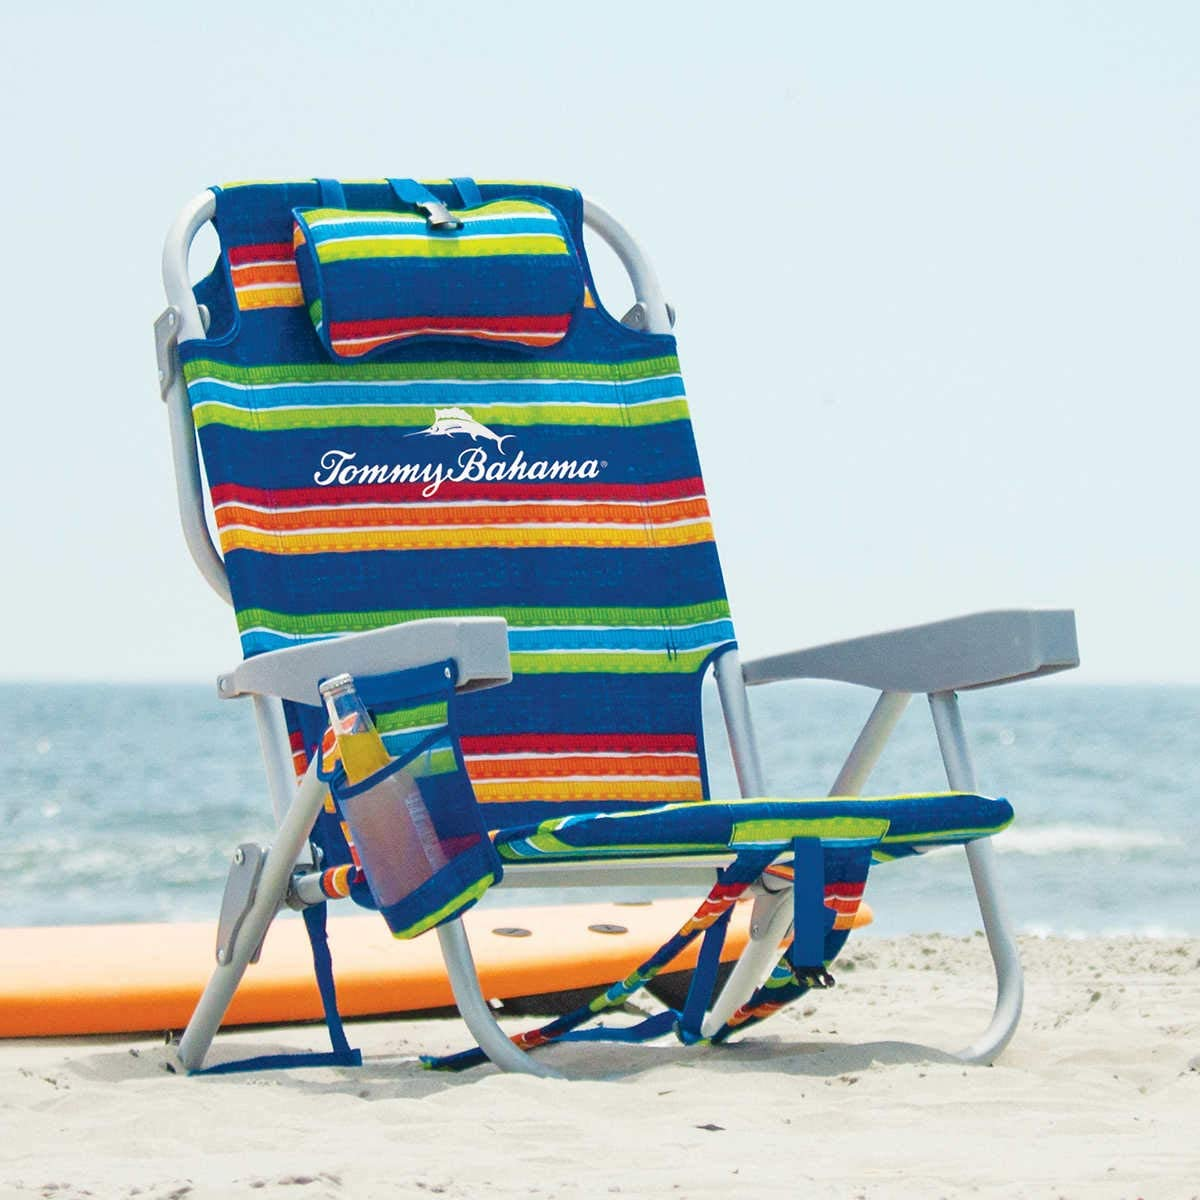 Tommy Bahama Backpack Cooler Chair (2-Pack)